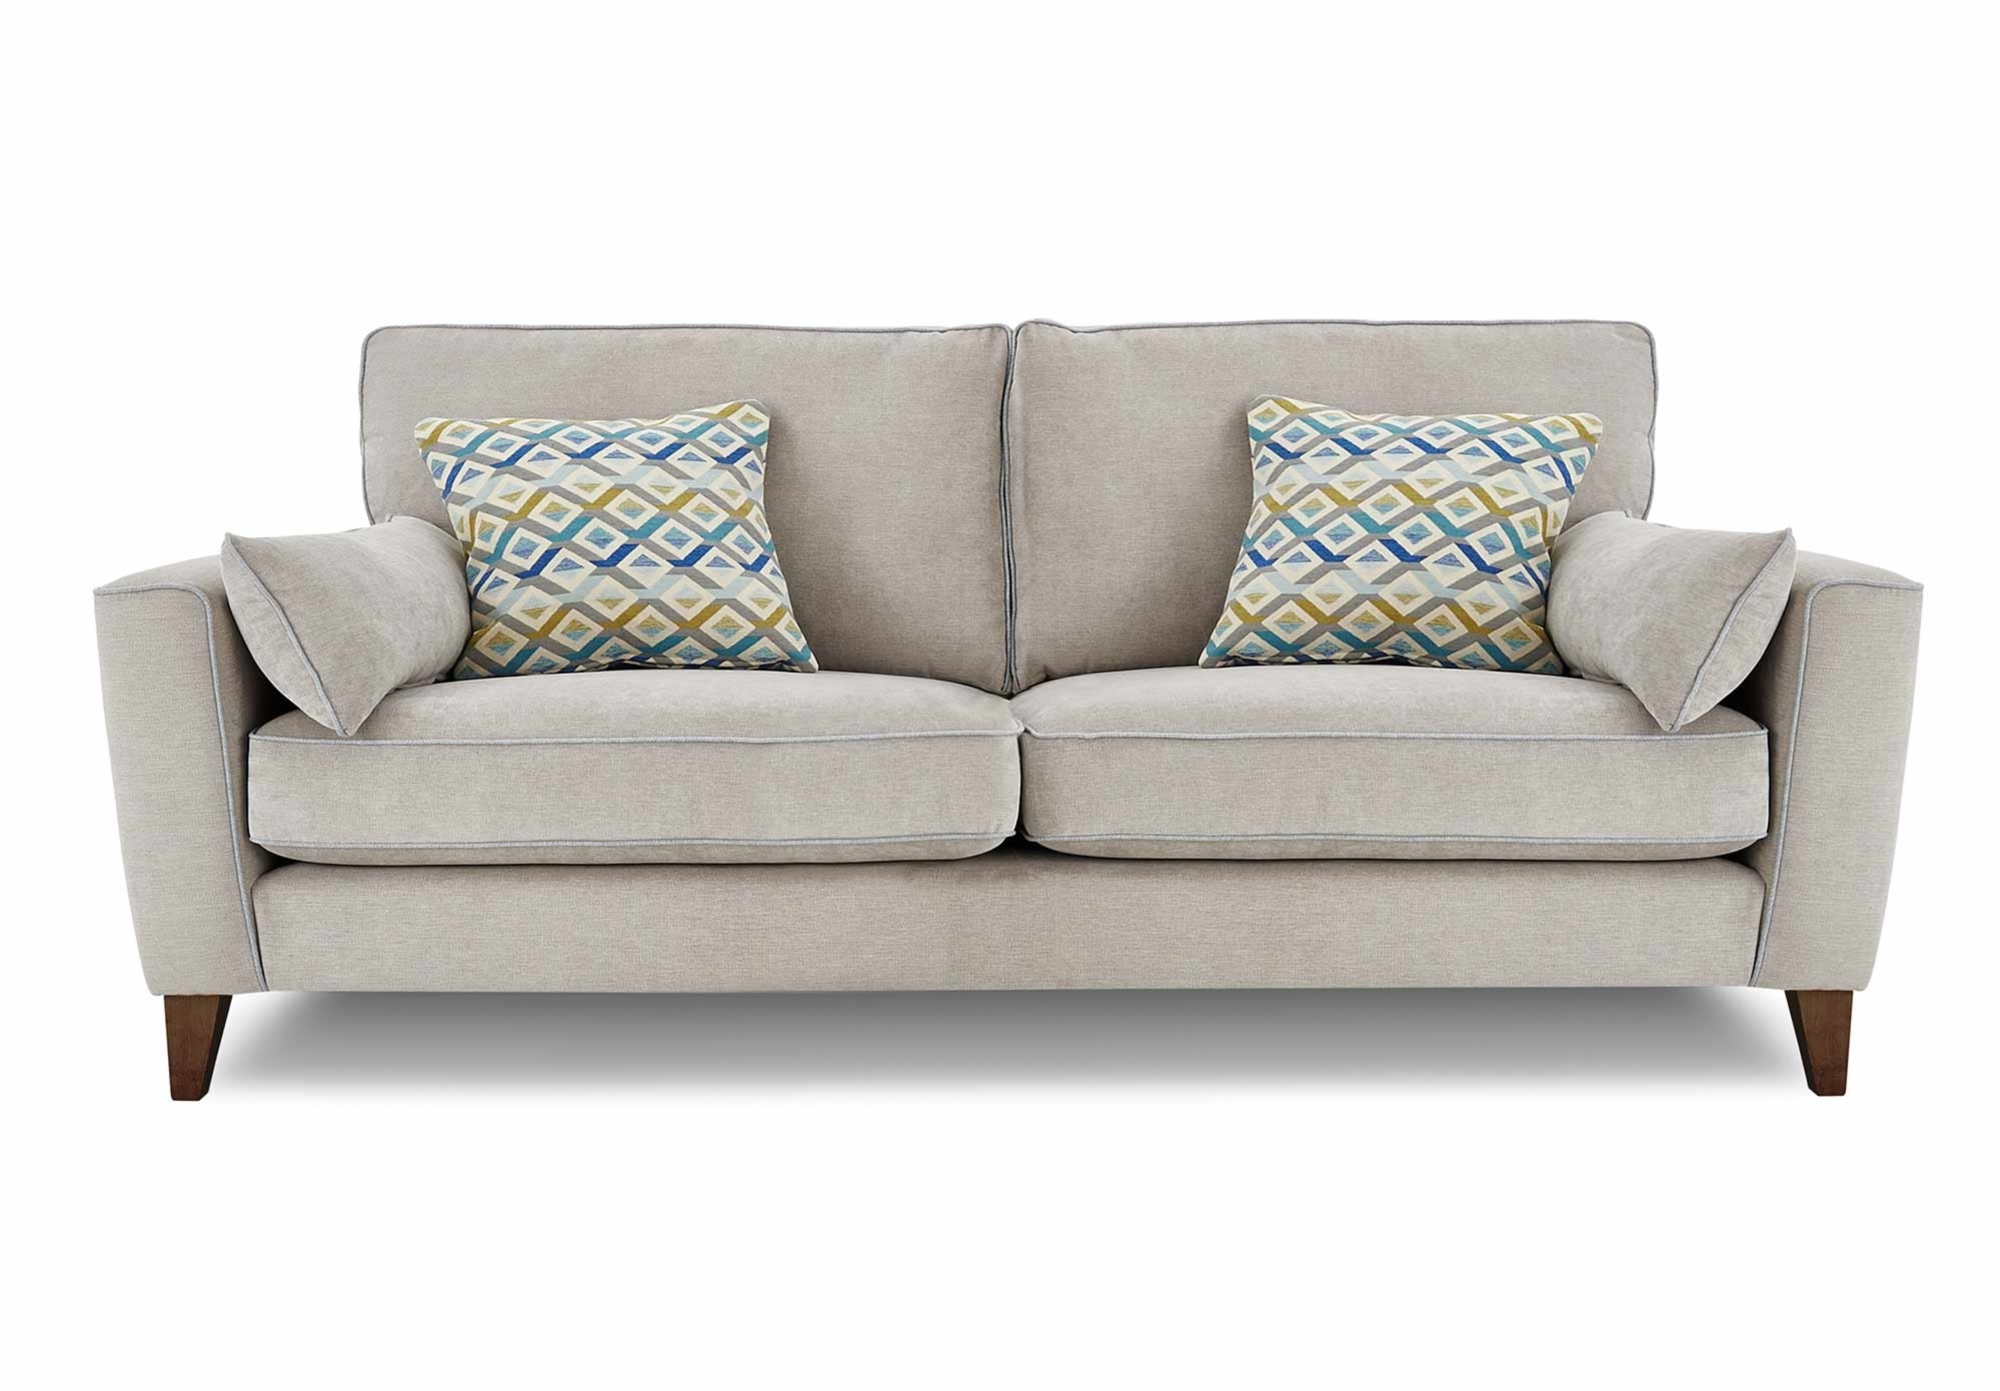 Four Seat Sofa Hereo Sofa In 4 Seater Sofas (Image 8 of 15)